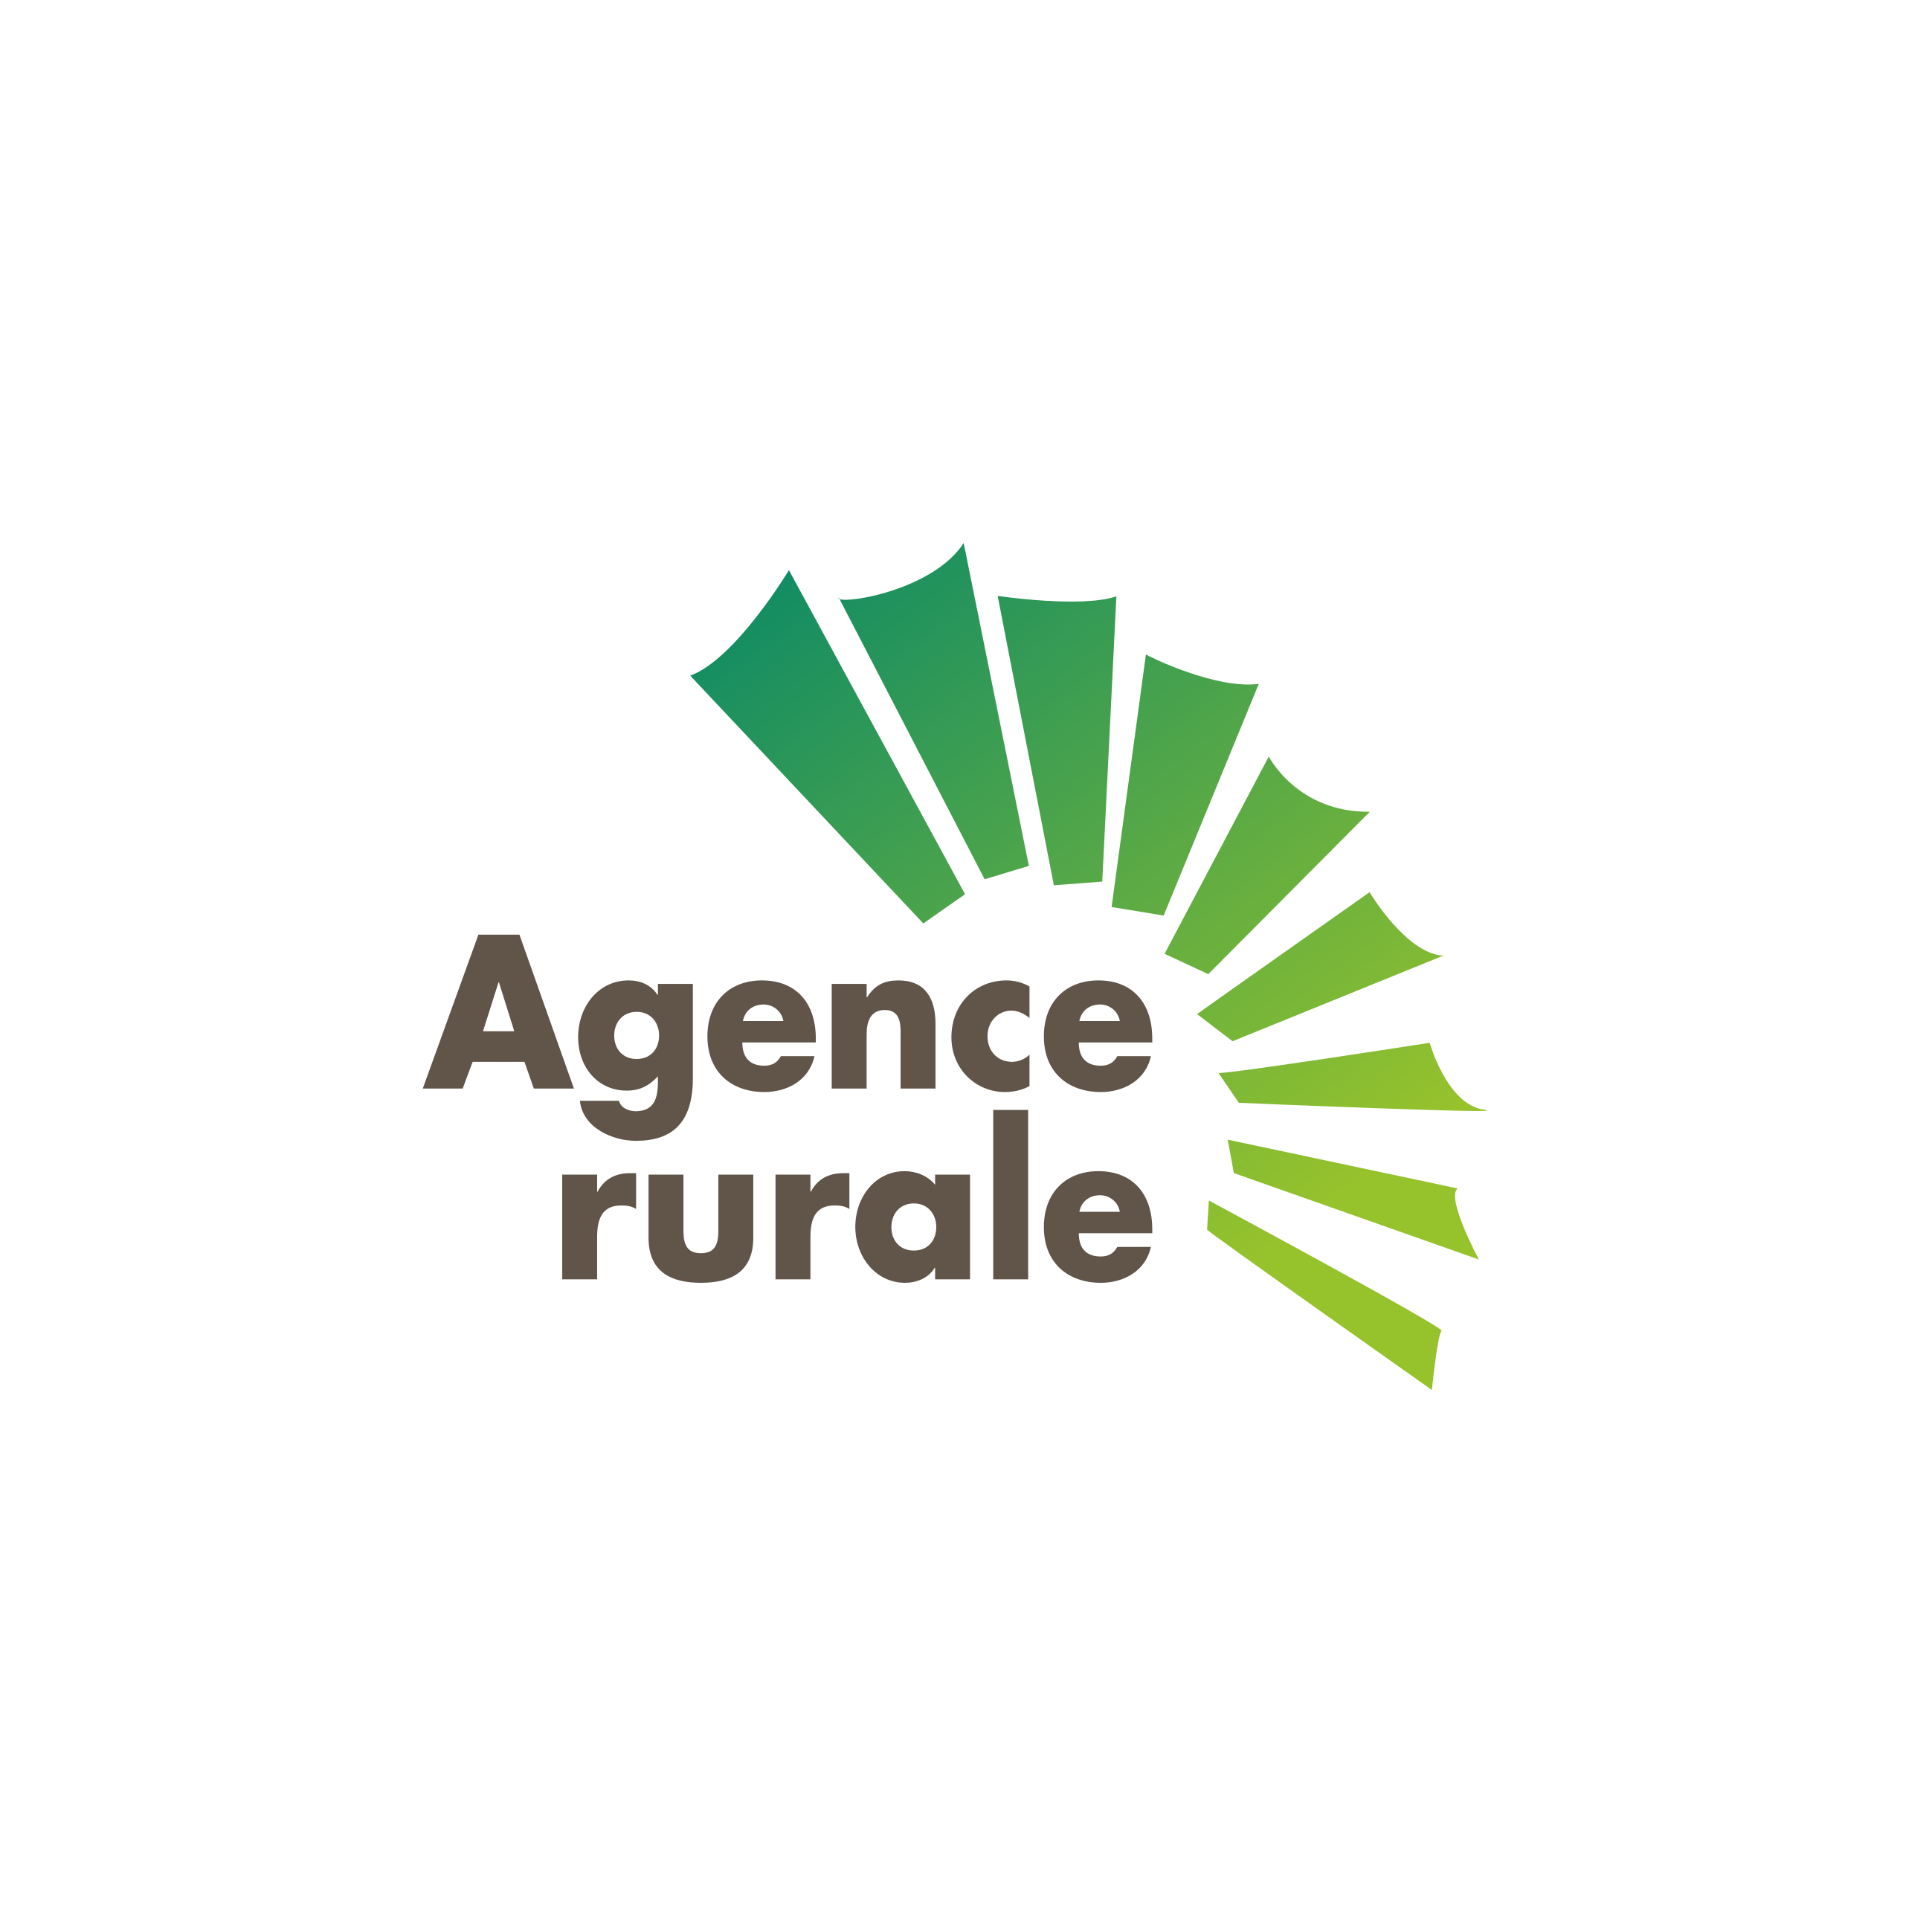 agence+rurale+nouvelle+caledonie